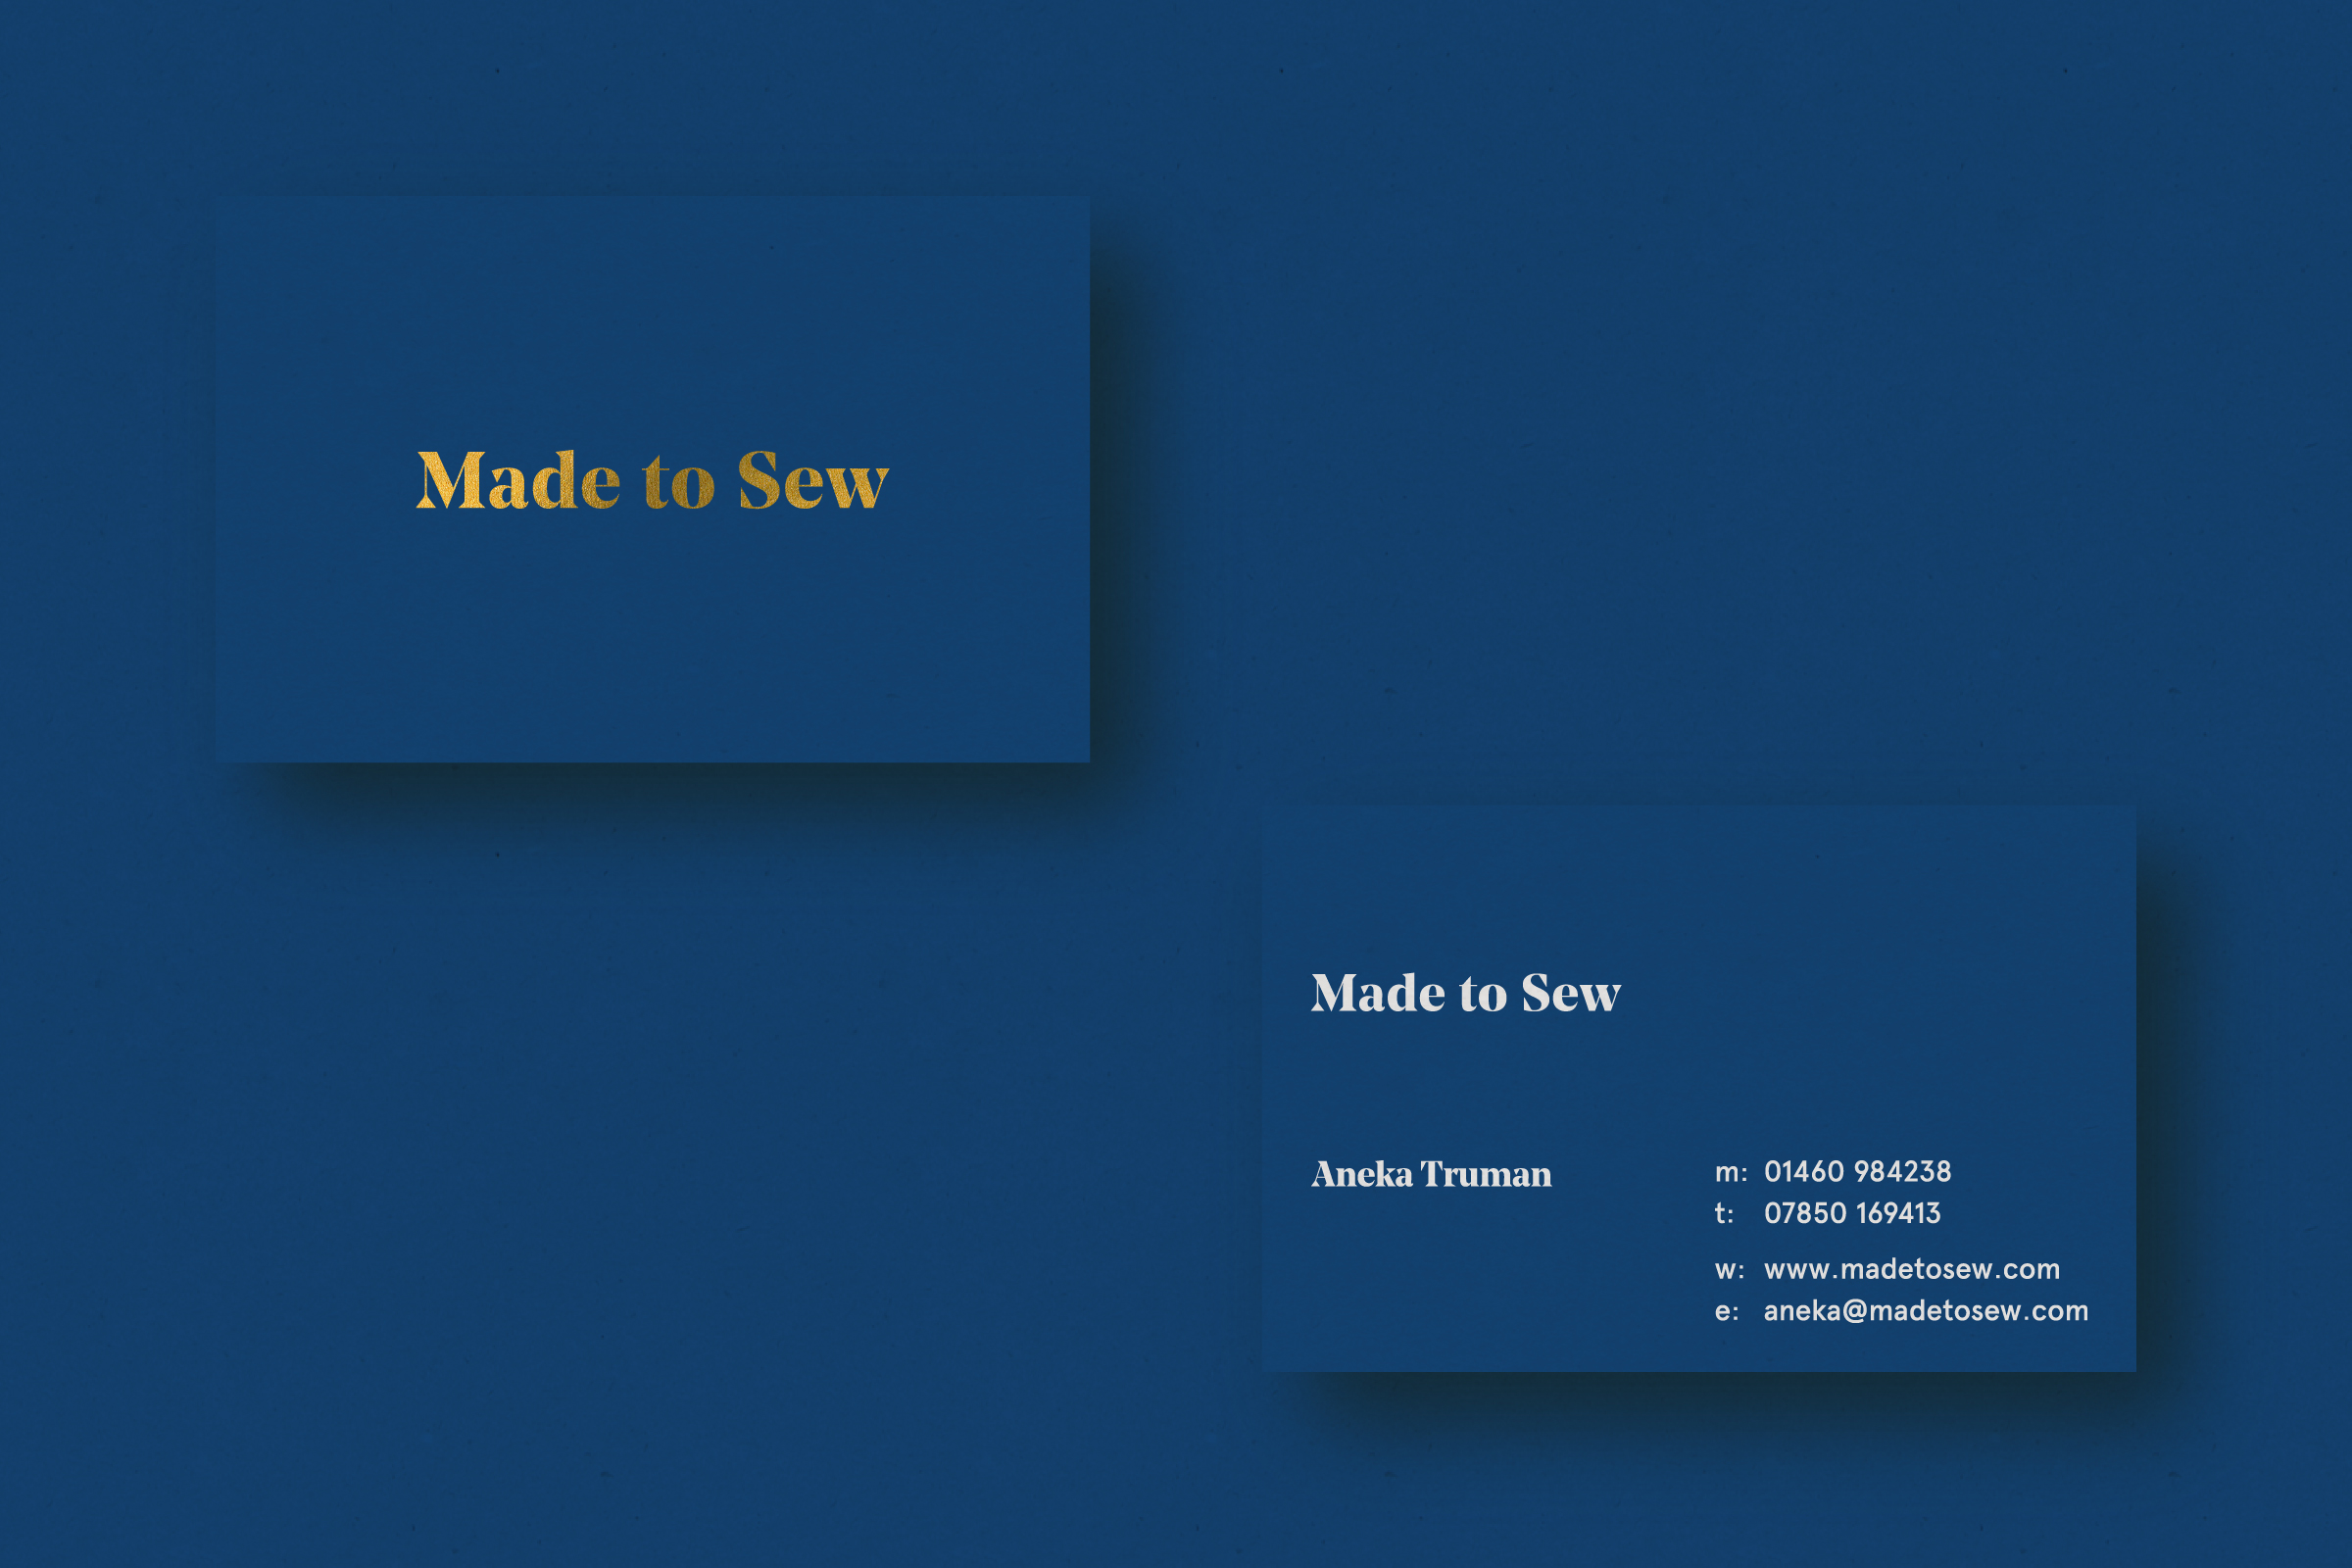 Business card design for Made to Sew